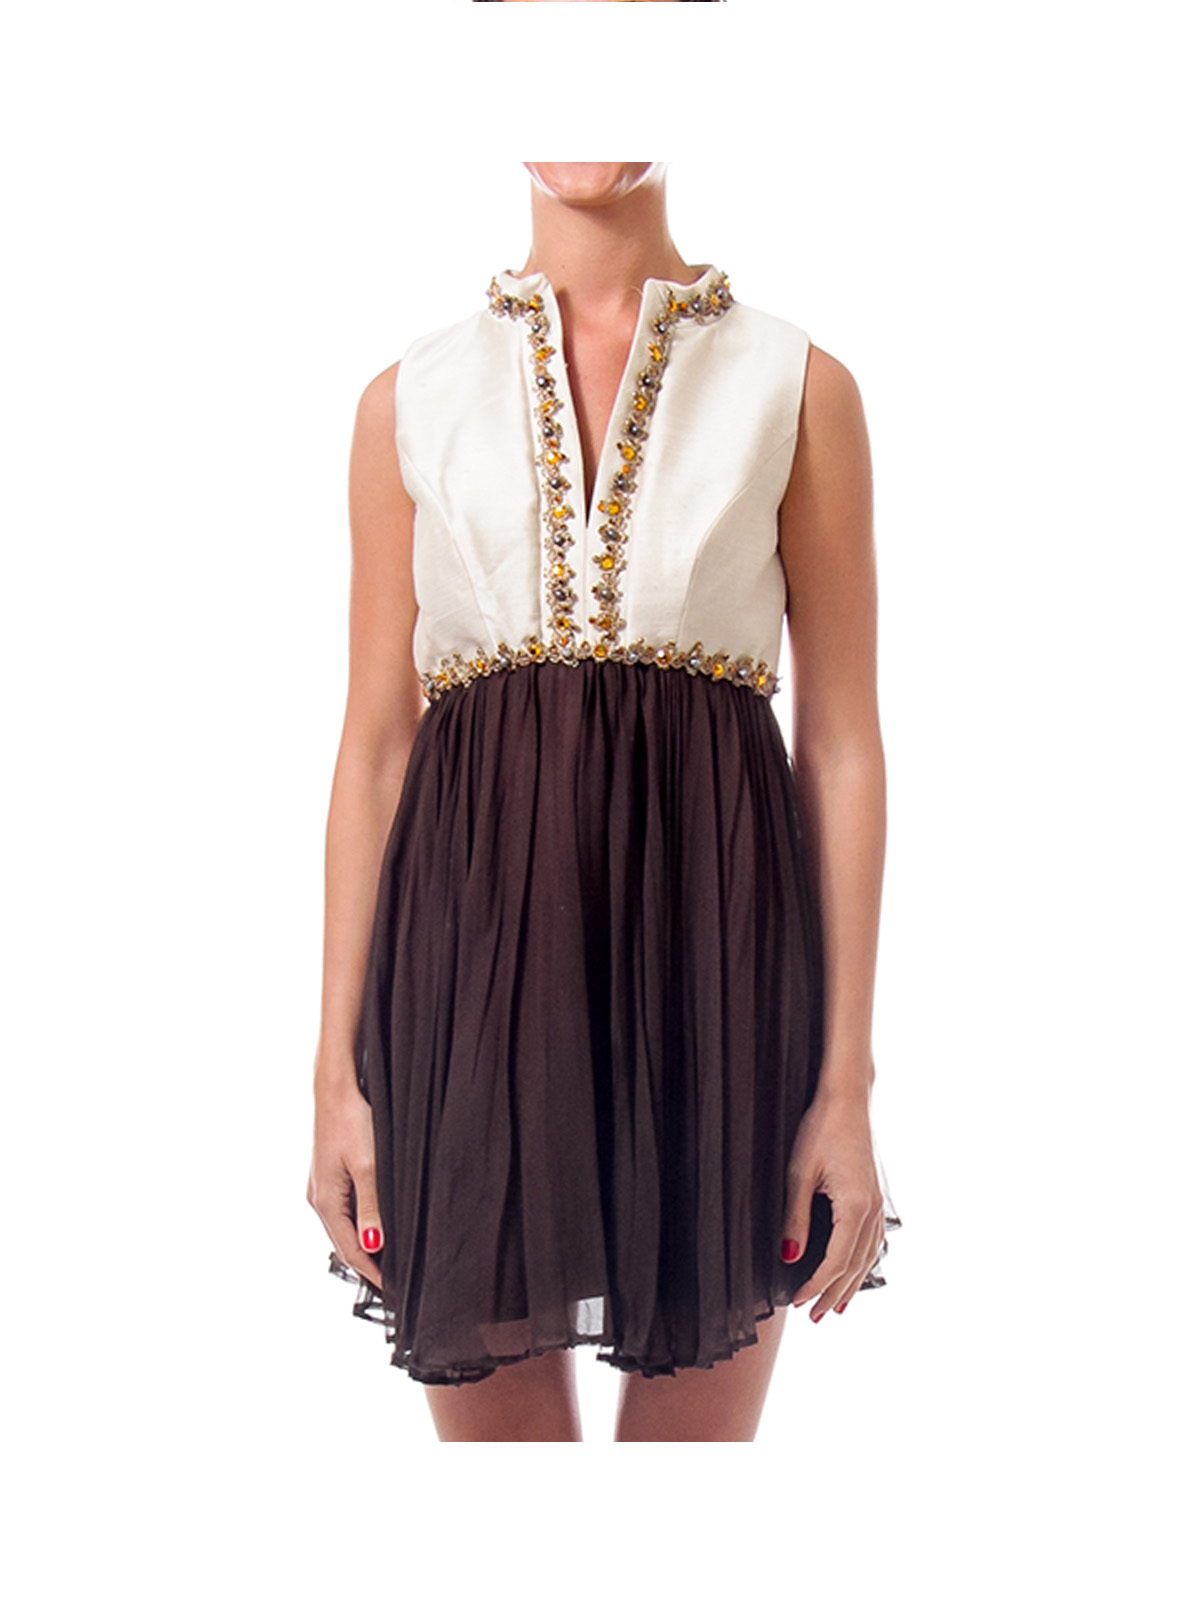 Cream & Brown Jeweled Beaded Dress